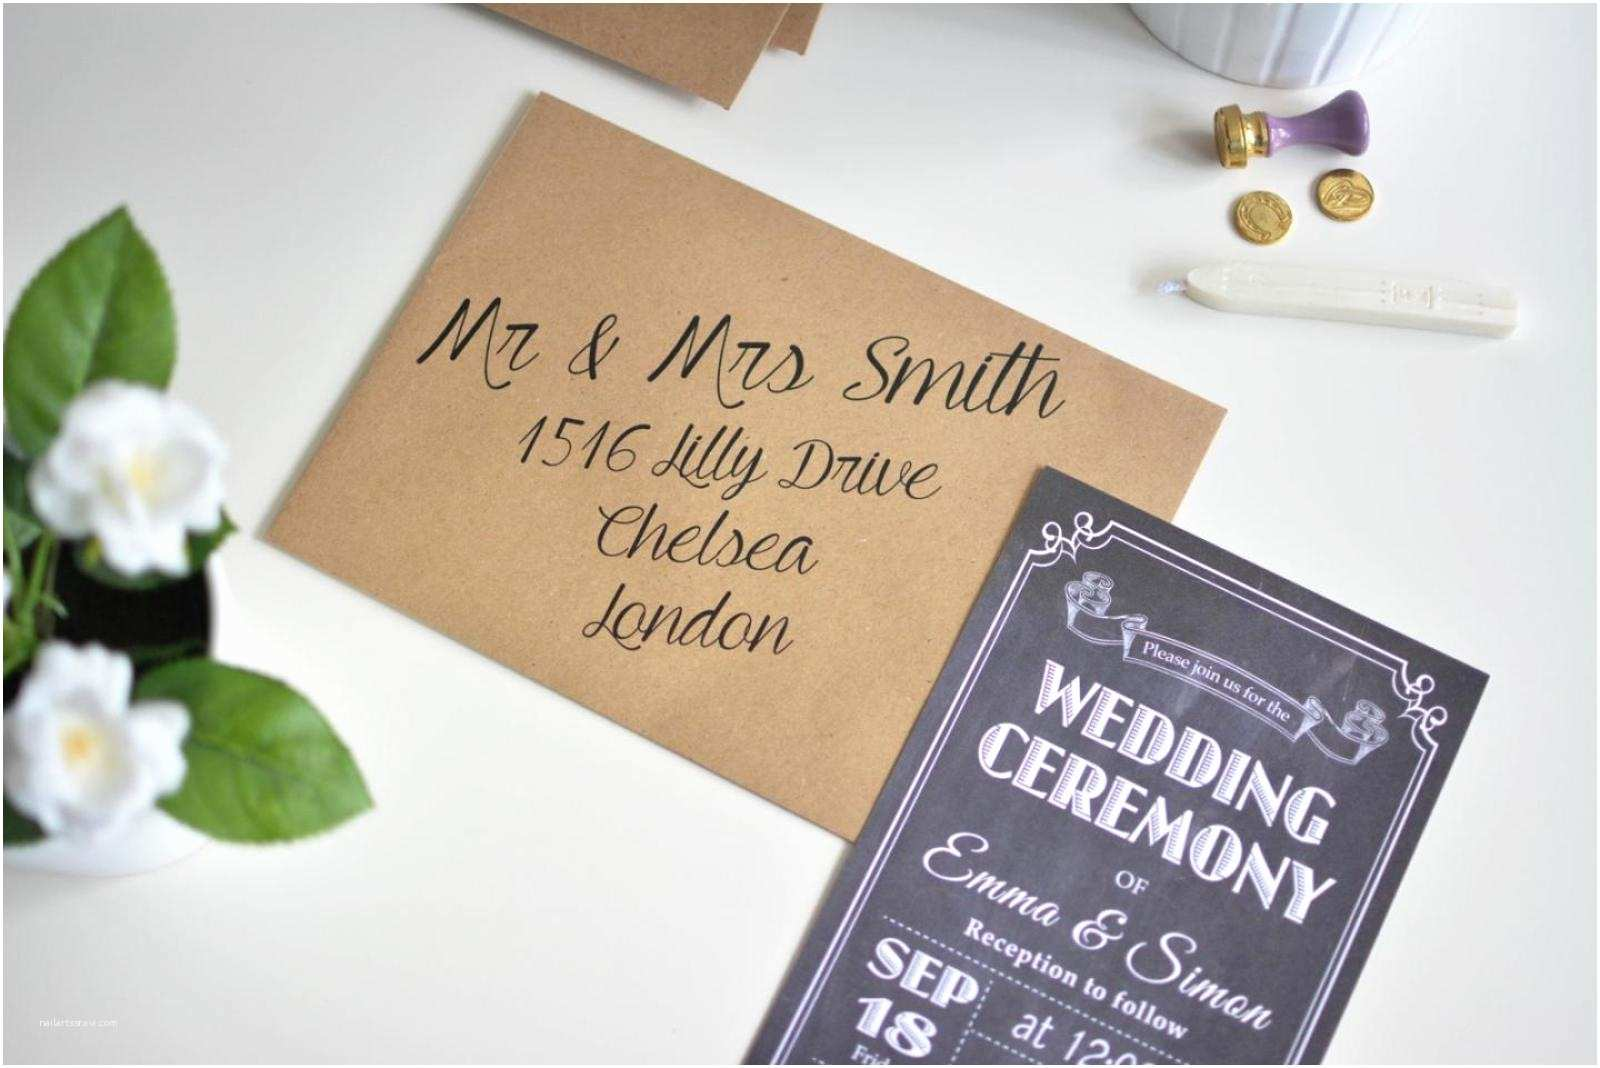 How Do I Print My Own Wedding Invitations How to Make Affordable Chalkboard Wedding Invitations